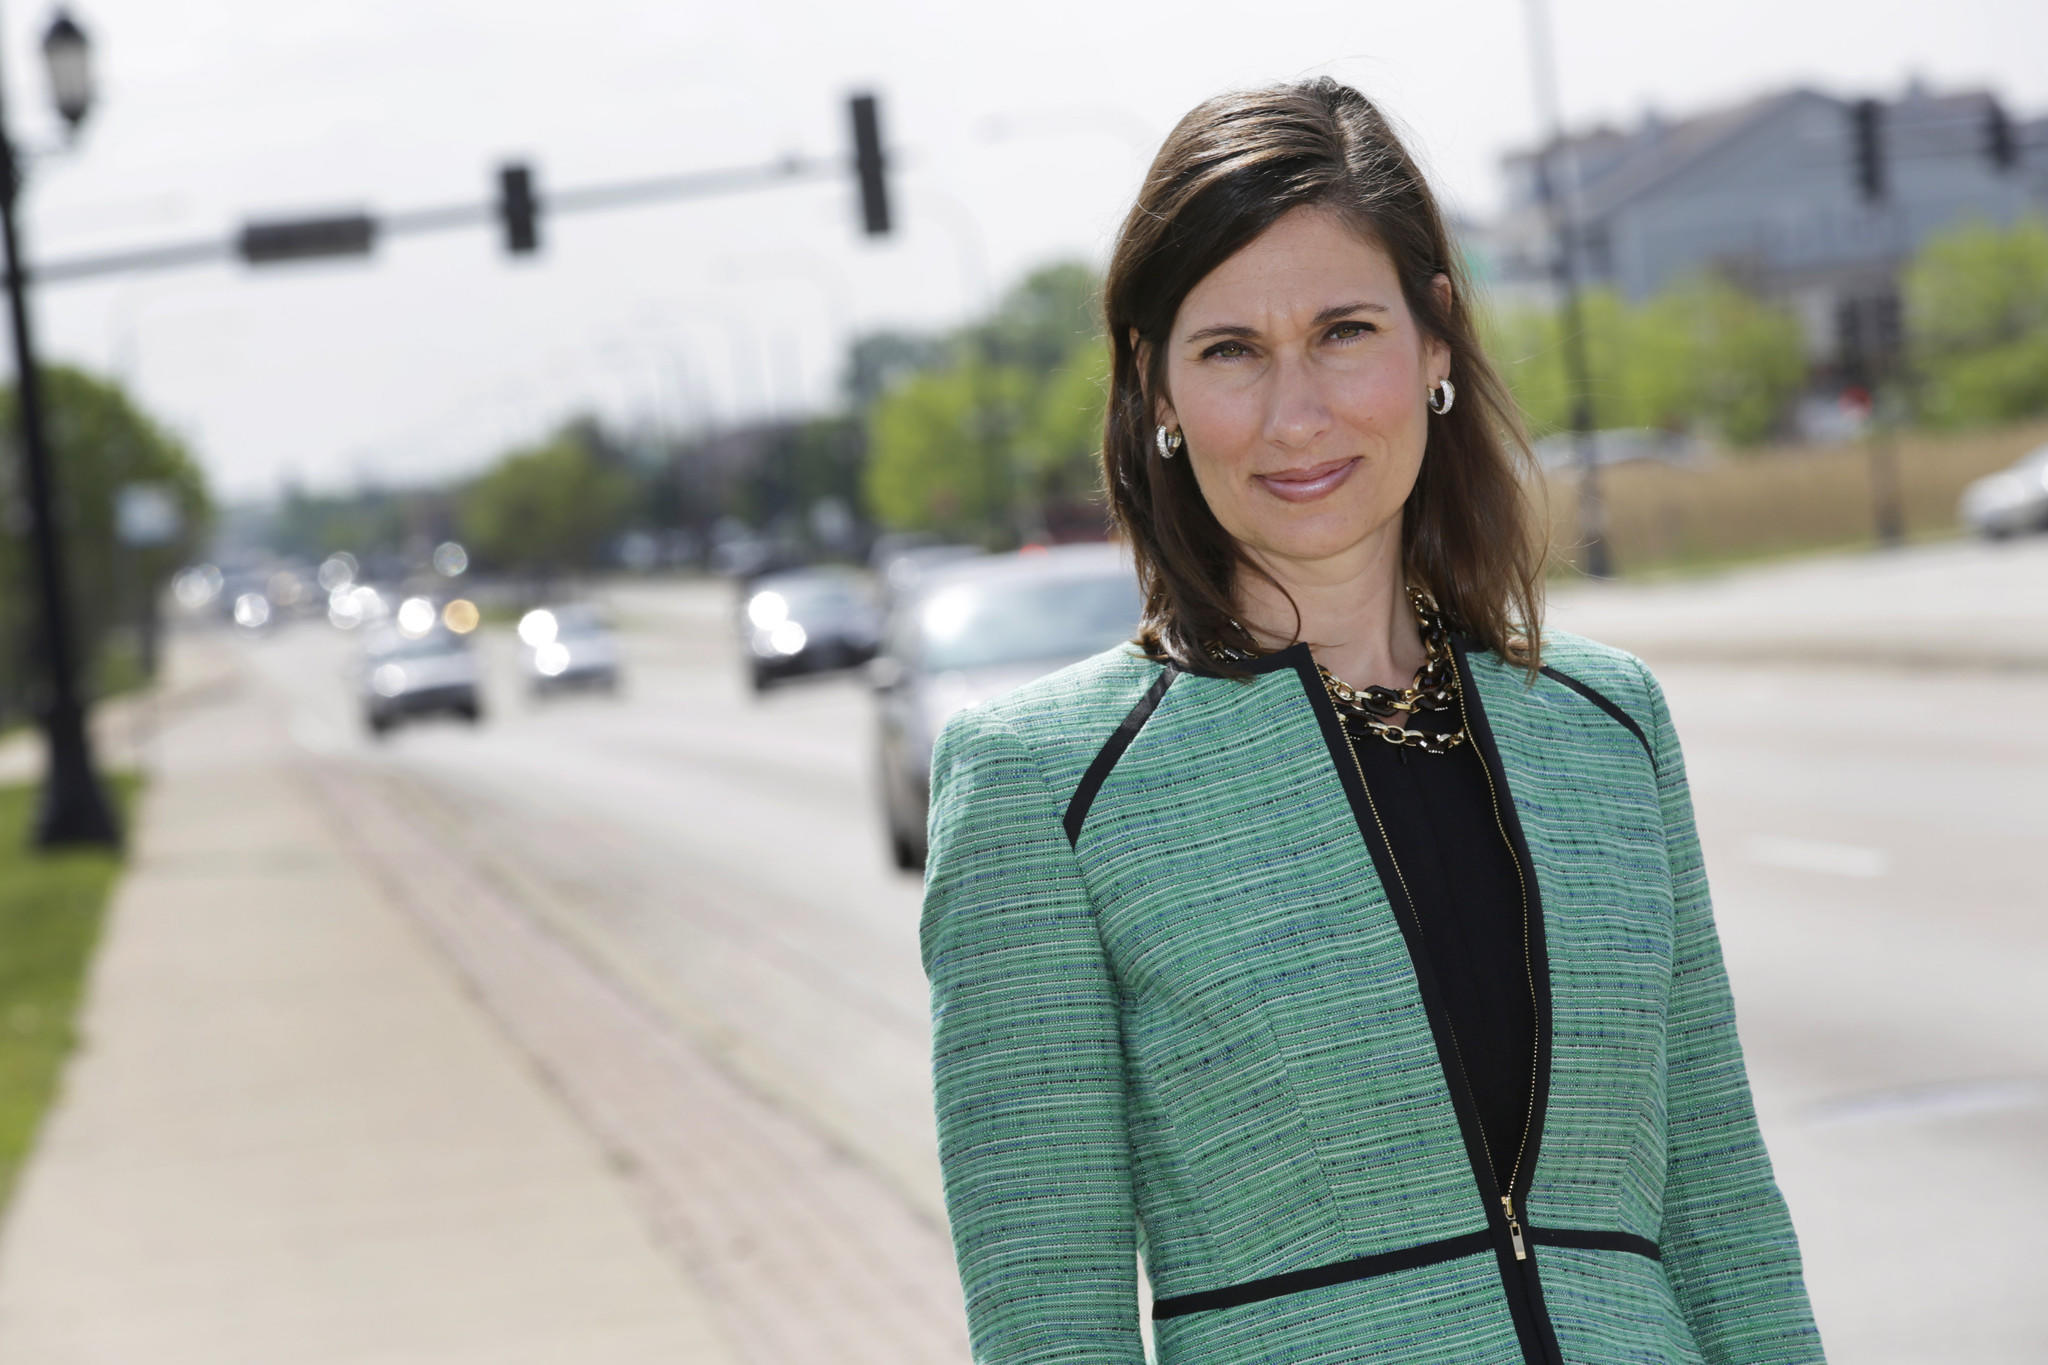 Deborah Hersman, head of the National Safety Council, said a solid step toward reducing distracted driving would be for more parents to set the correct example for their teenage drivers.